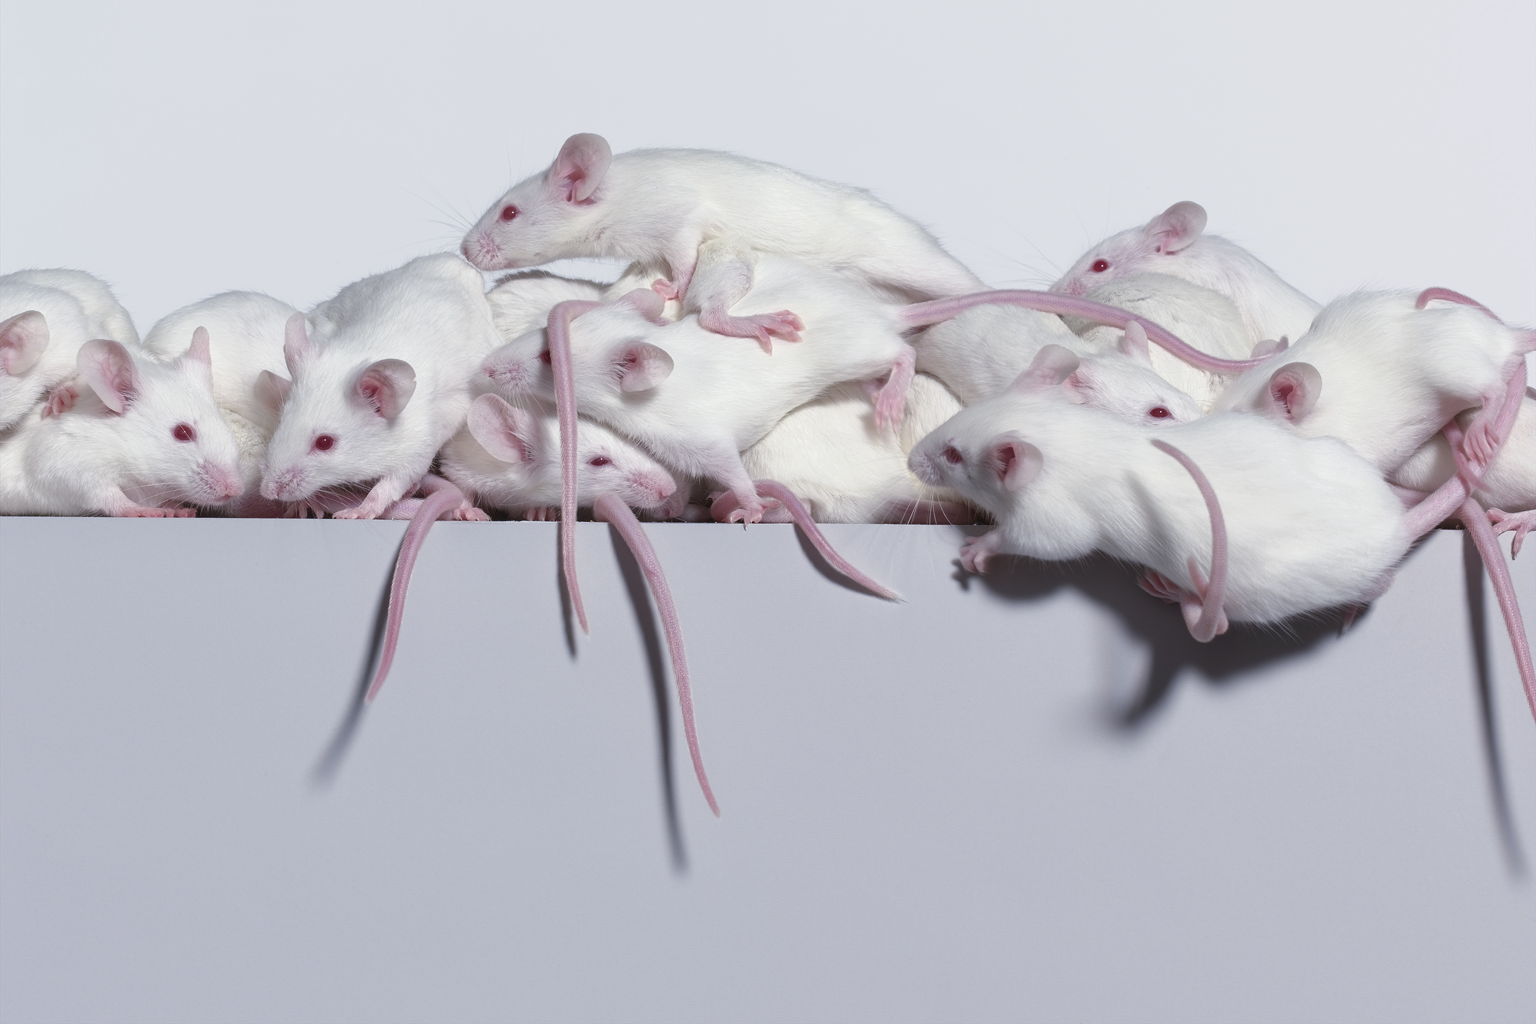 04_6_0_Mice_094_2T.png